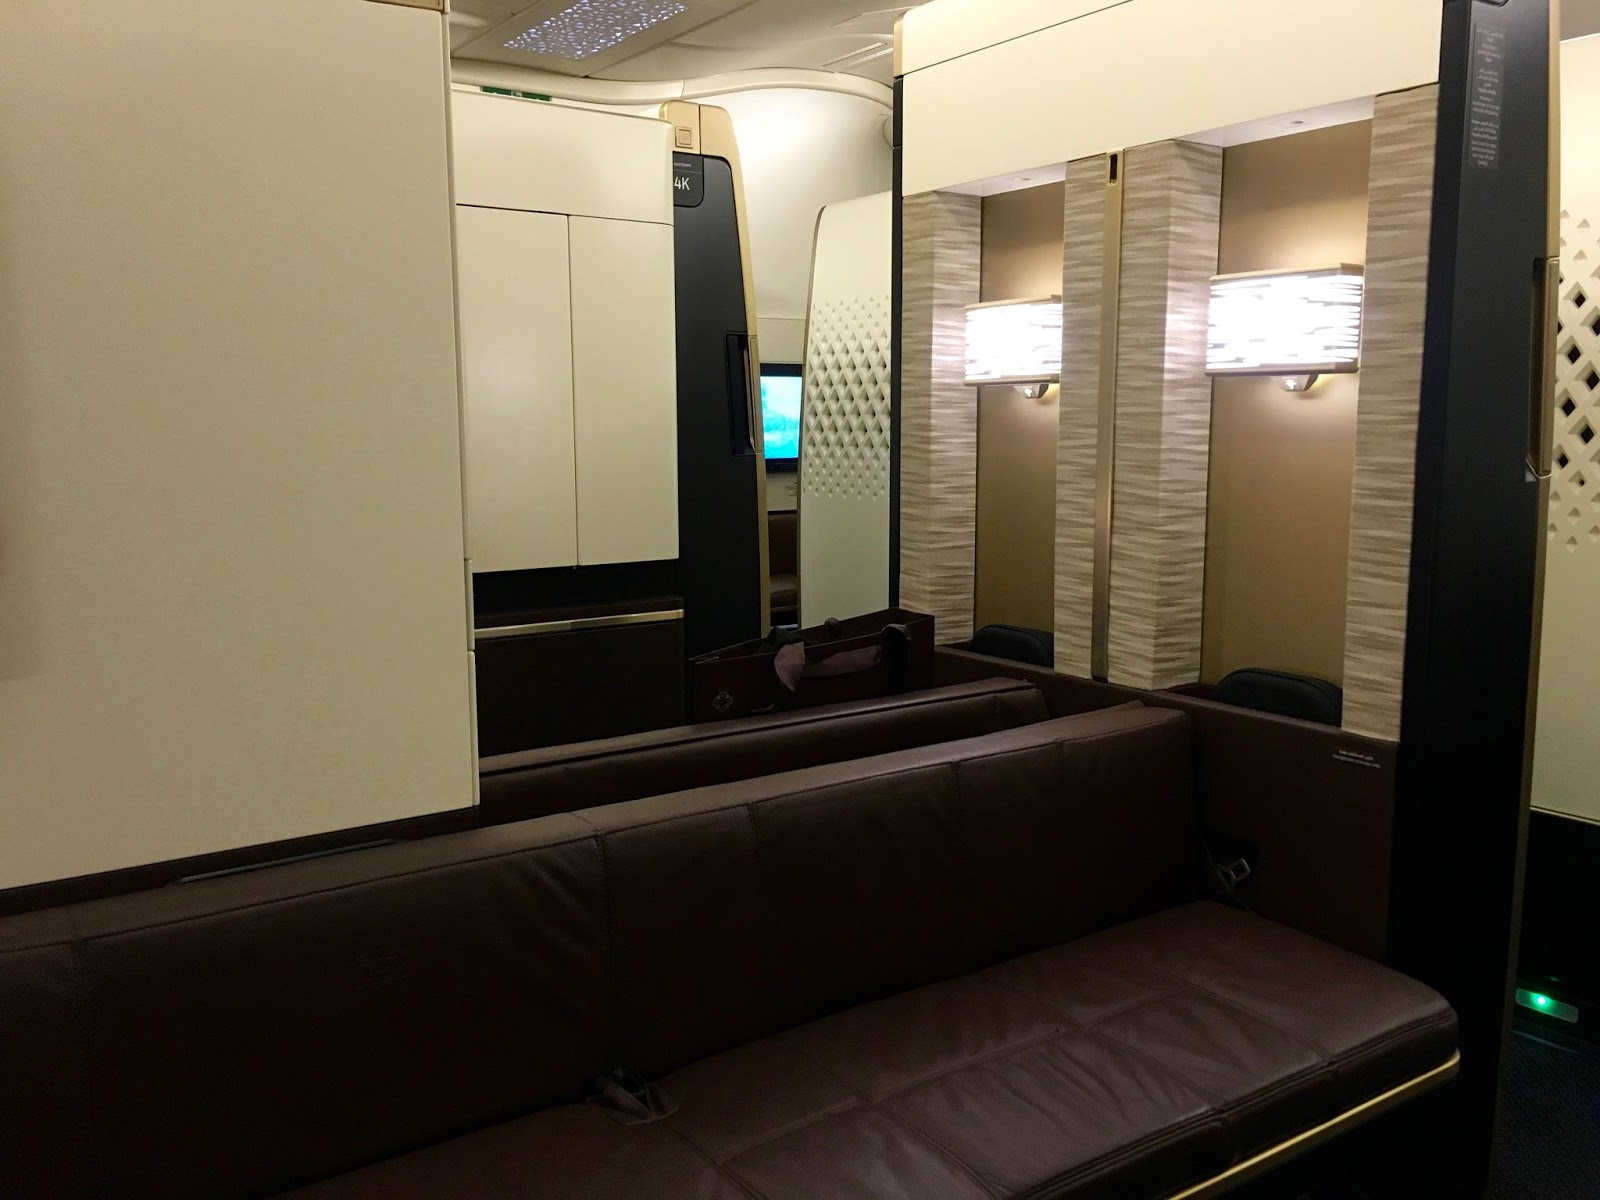 Pic etihad airways a380 first class apartment 4k may 2015 - View From 3k